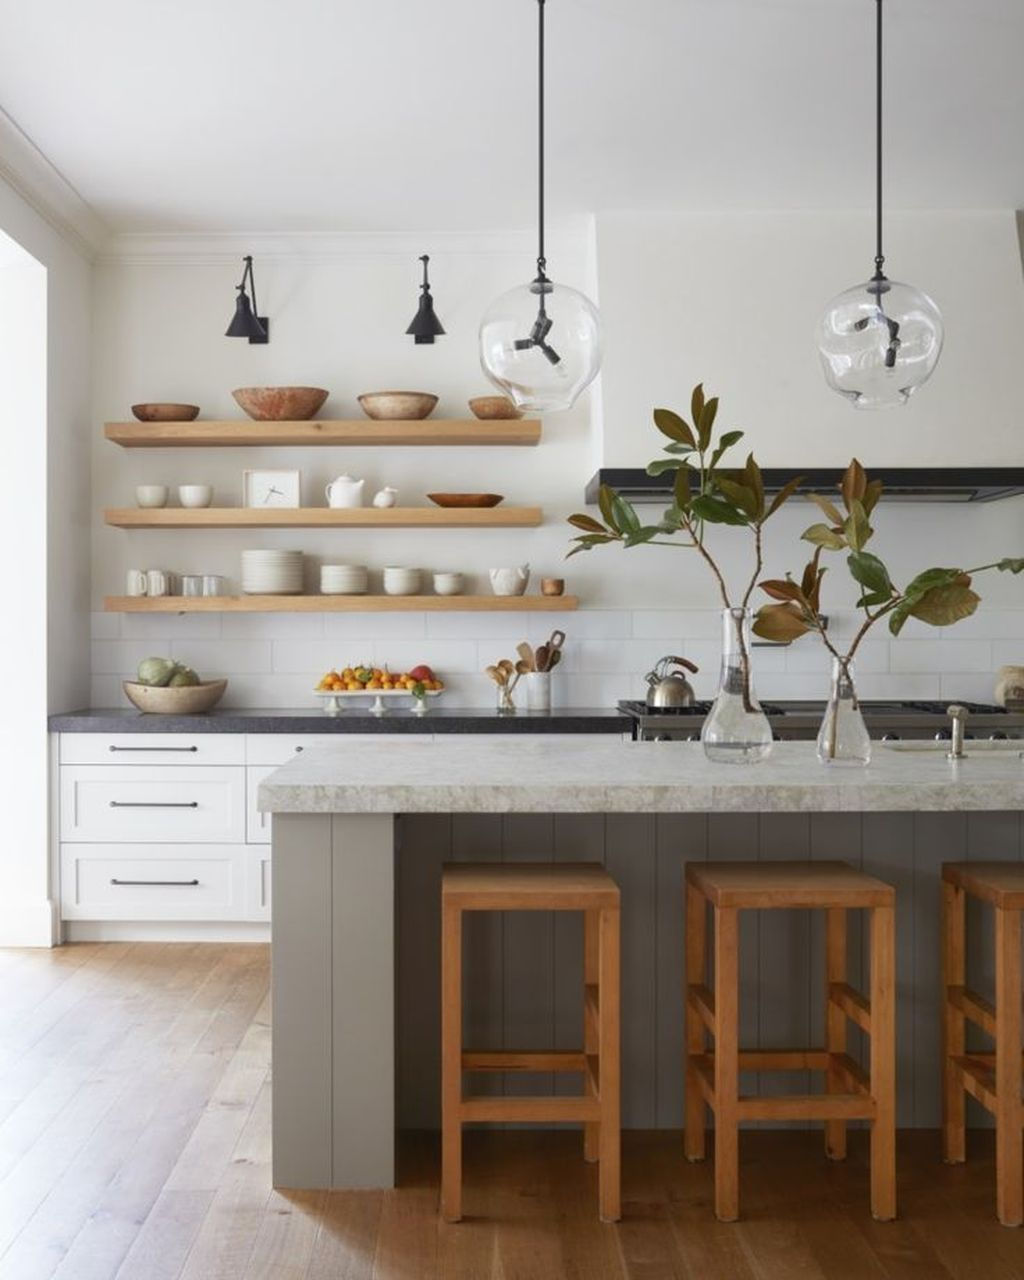 Popular Scandinavian Kitchen Decor Ideas You Should Try 29